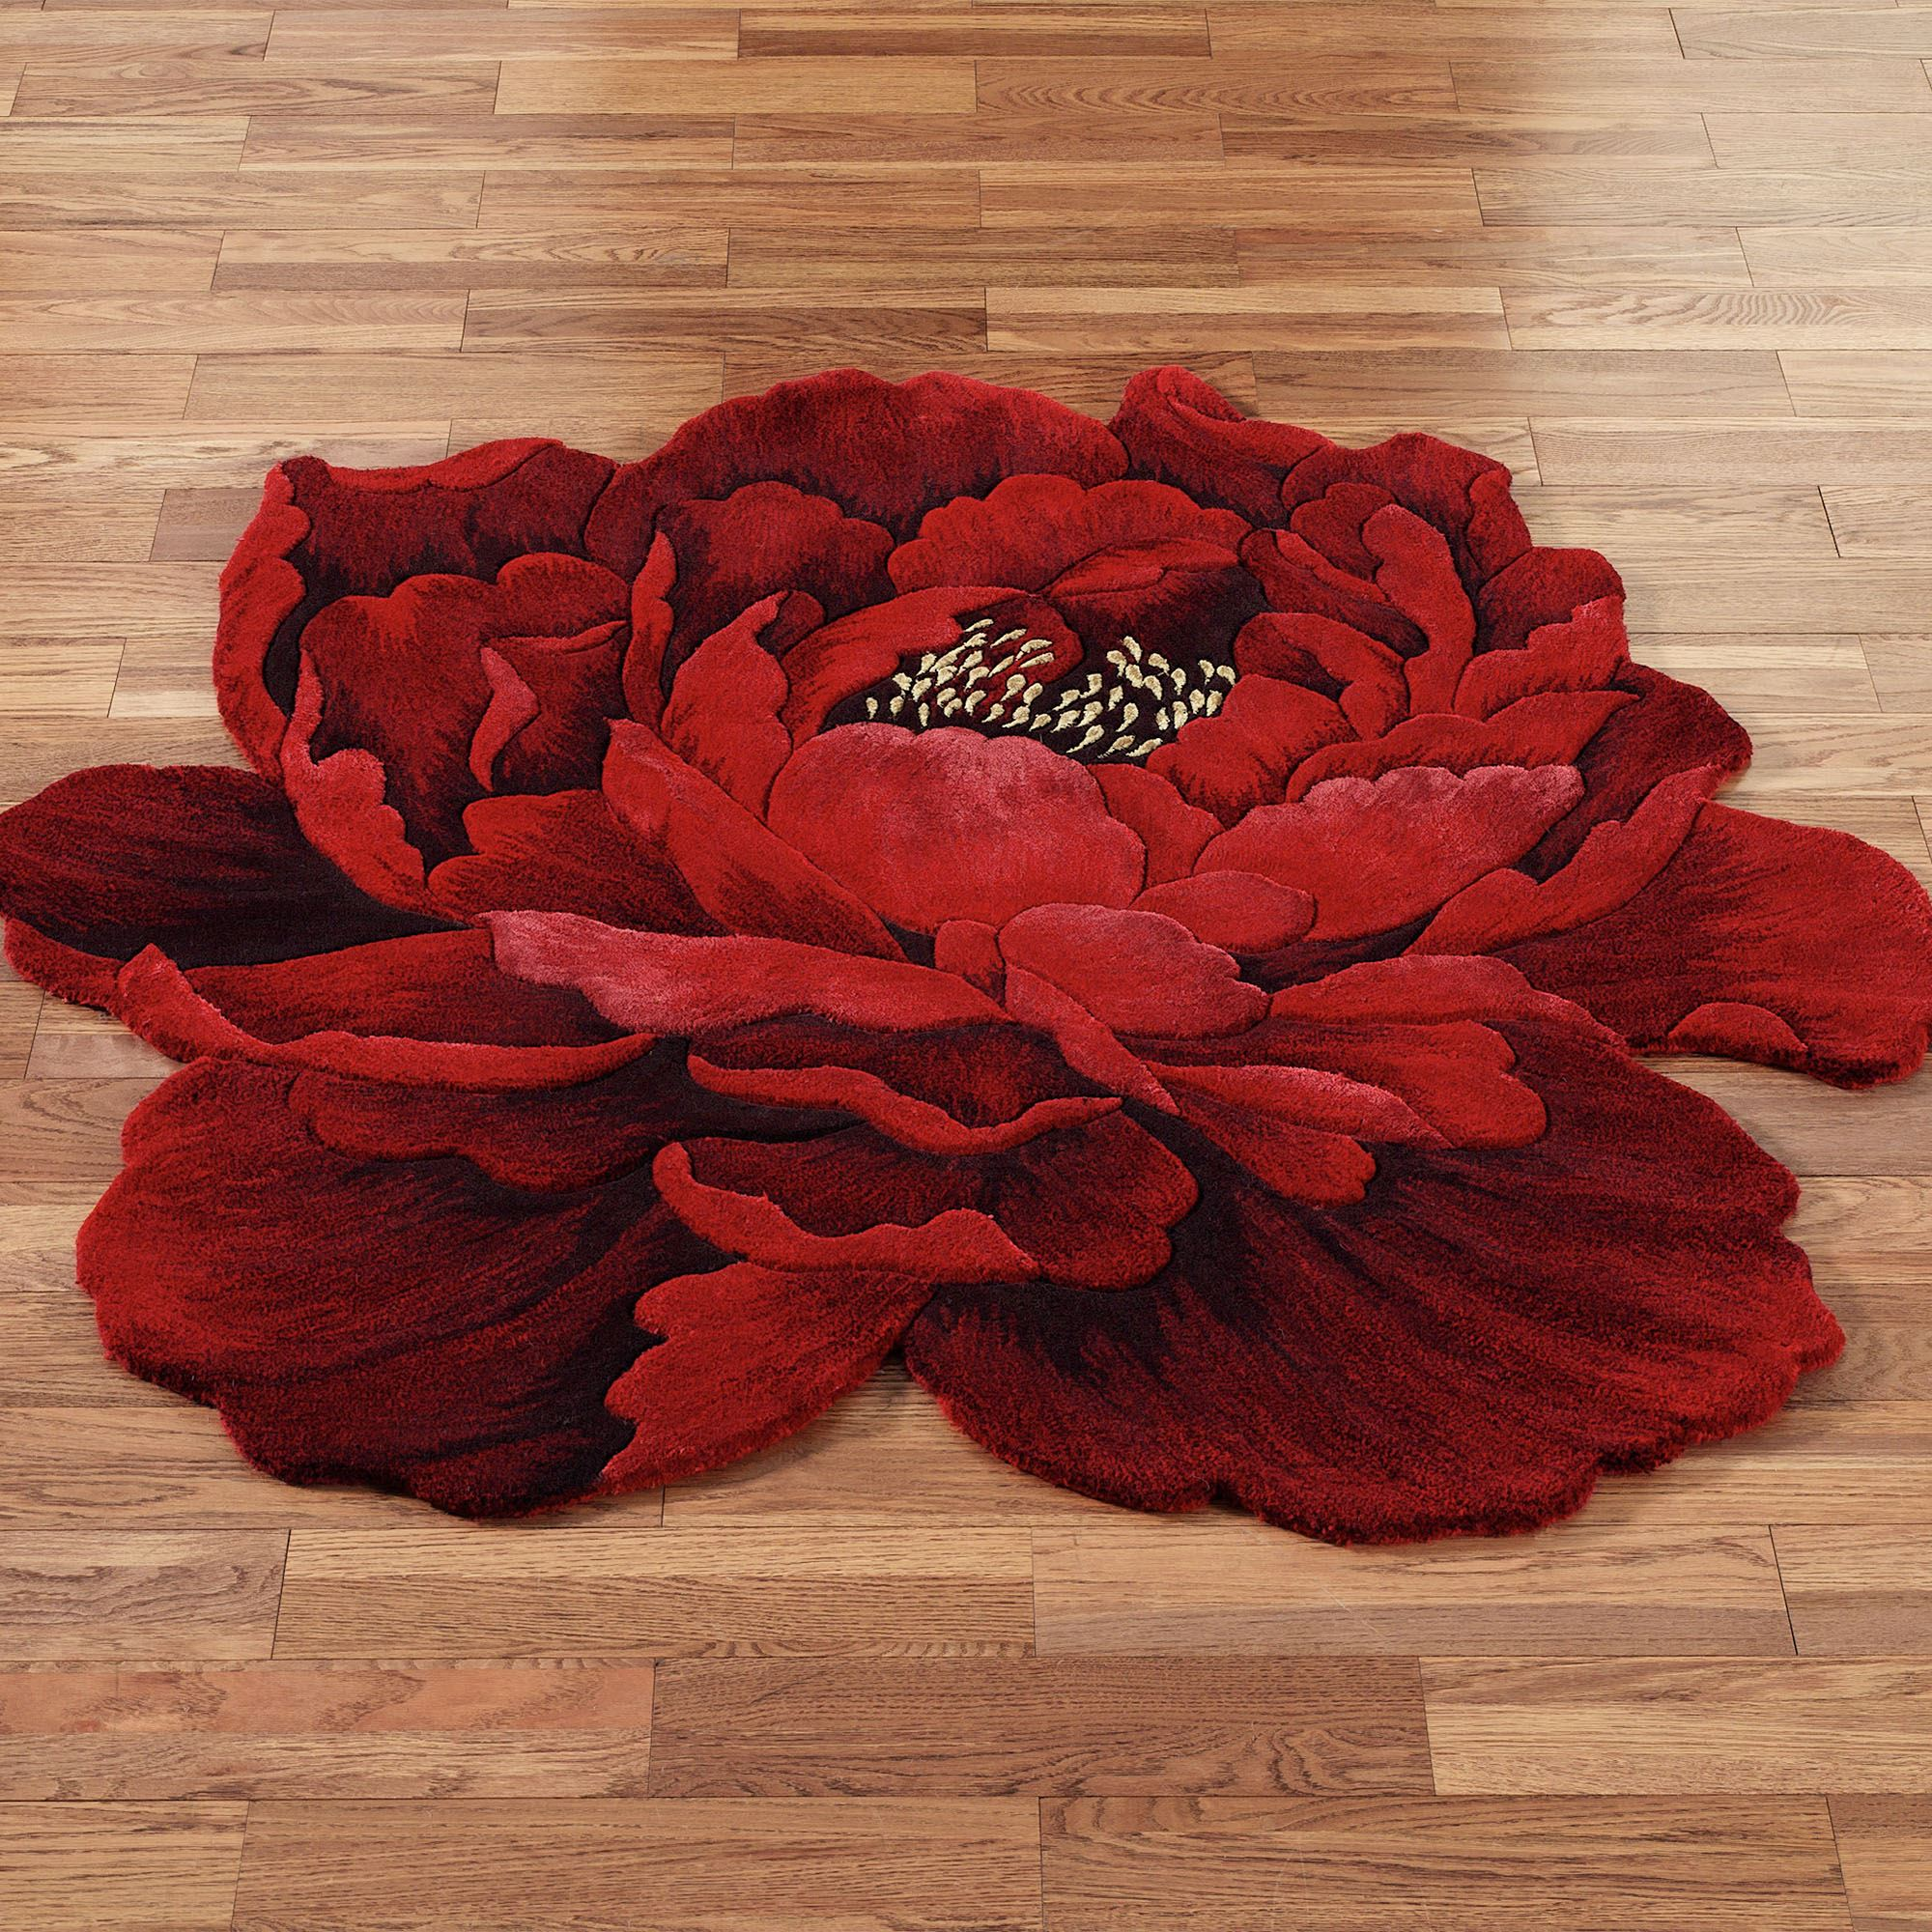 P Shape Shower Bath Scarlet Magic Peony Flower Shaped Round Rugs